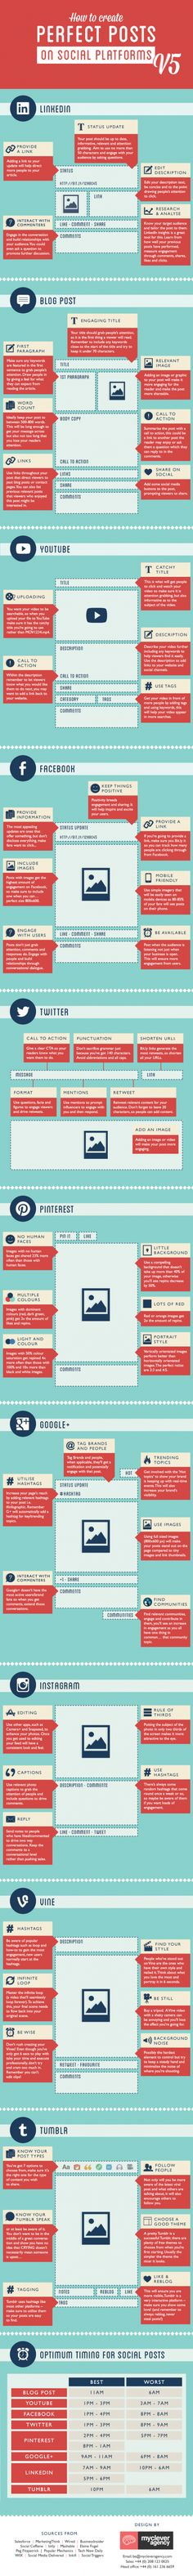 PerfectPost-V5-Infographic